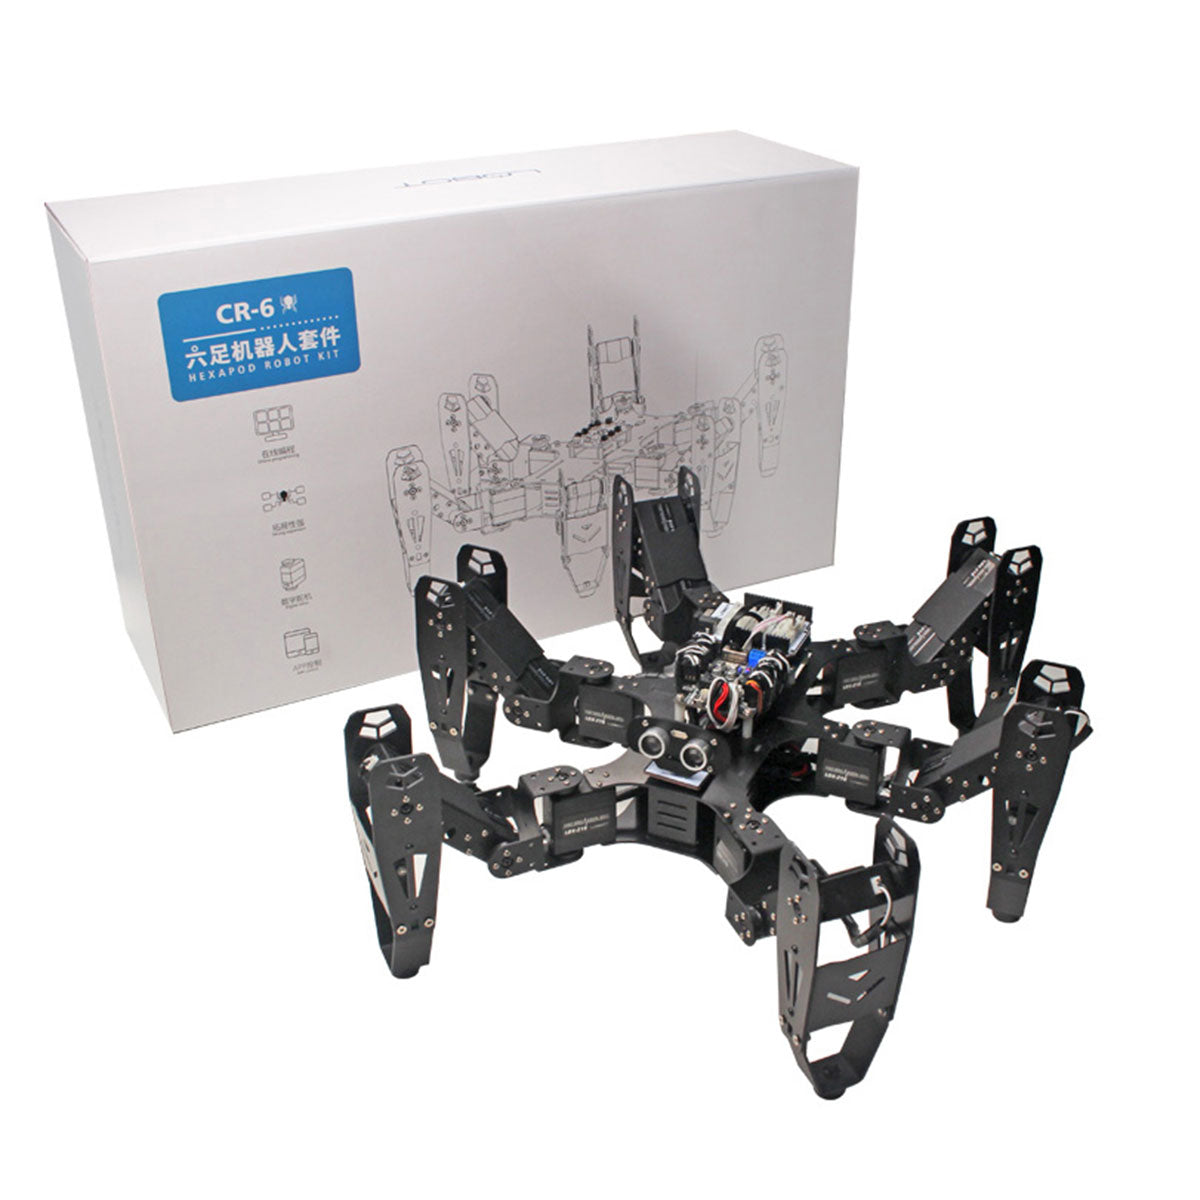 CR-6 Hexapod Robot: Hiwonder Hexapod Programmable Robot with Secondary Development